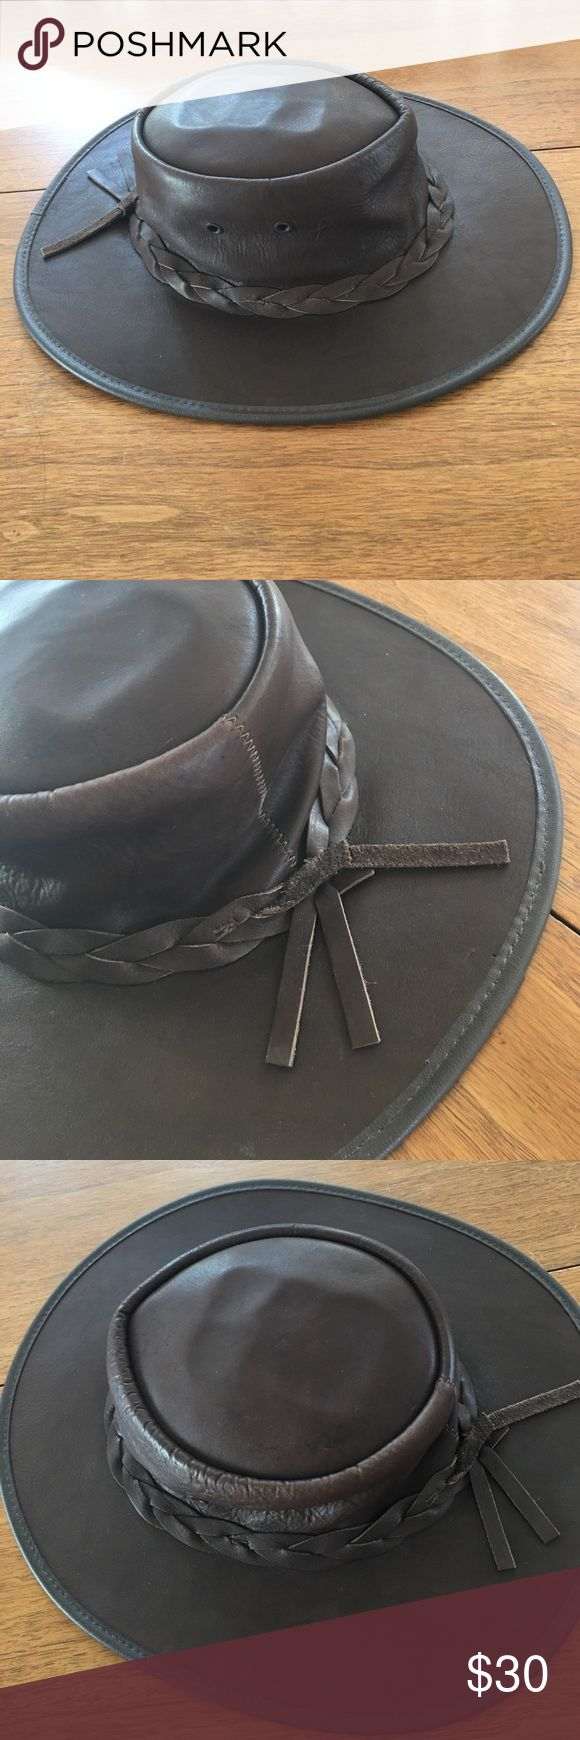 """Australian Hat by Barmah Hats This is a genuine Aussie Outback hat for sure, made in Australia!   It's """"fullgrain"""" leather and waterproof.  It's in beautiful shape and a perfect addition to any hat lover's collection. Great braided detail and by crickey, this is an awesome deal! Barmah Hats Accessories Hats"""